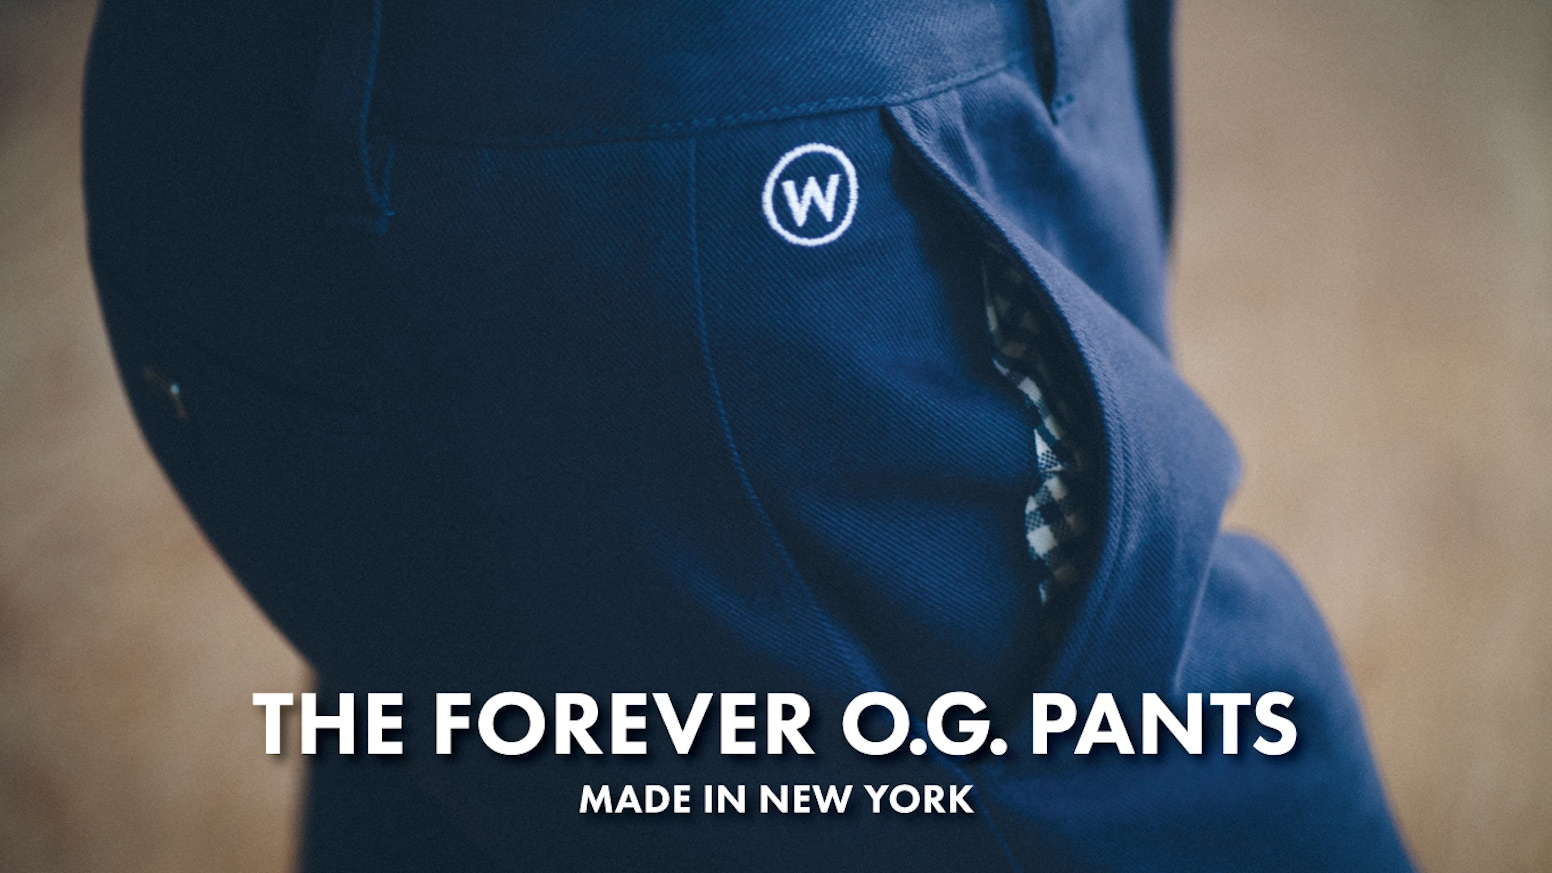 Silver infused pants that are Odor, Liquid & Stain Resistant, Made in New York and backed by a Lifetime Quality and Size Guarantee.